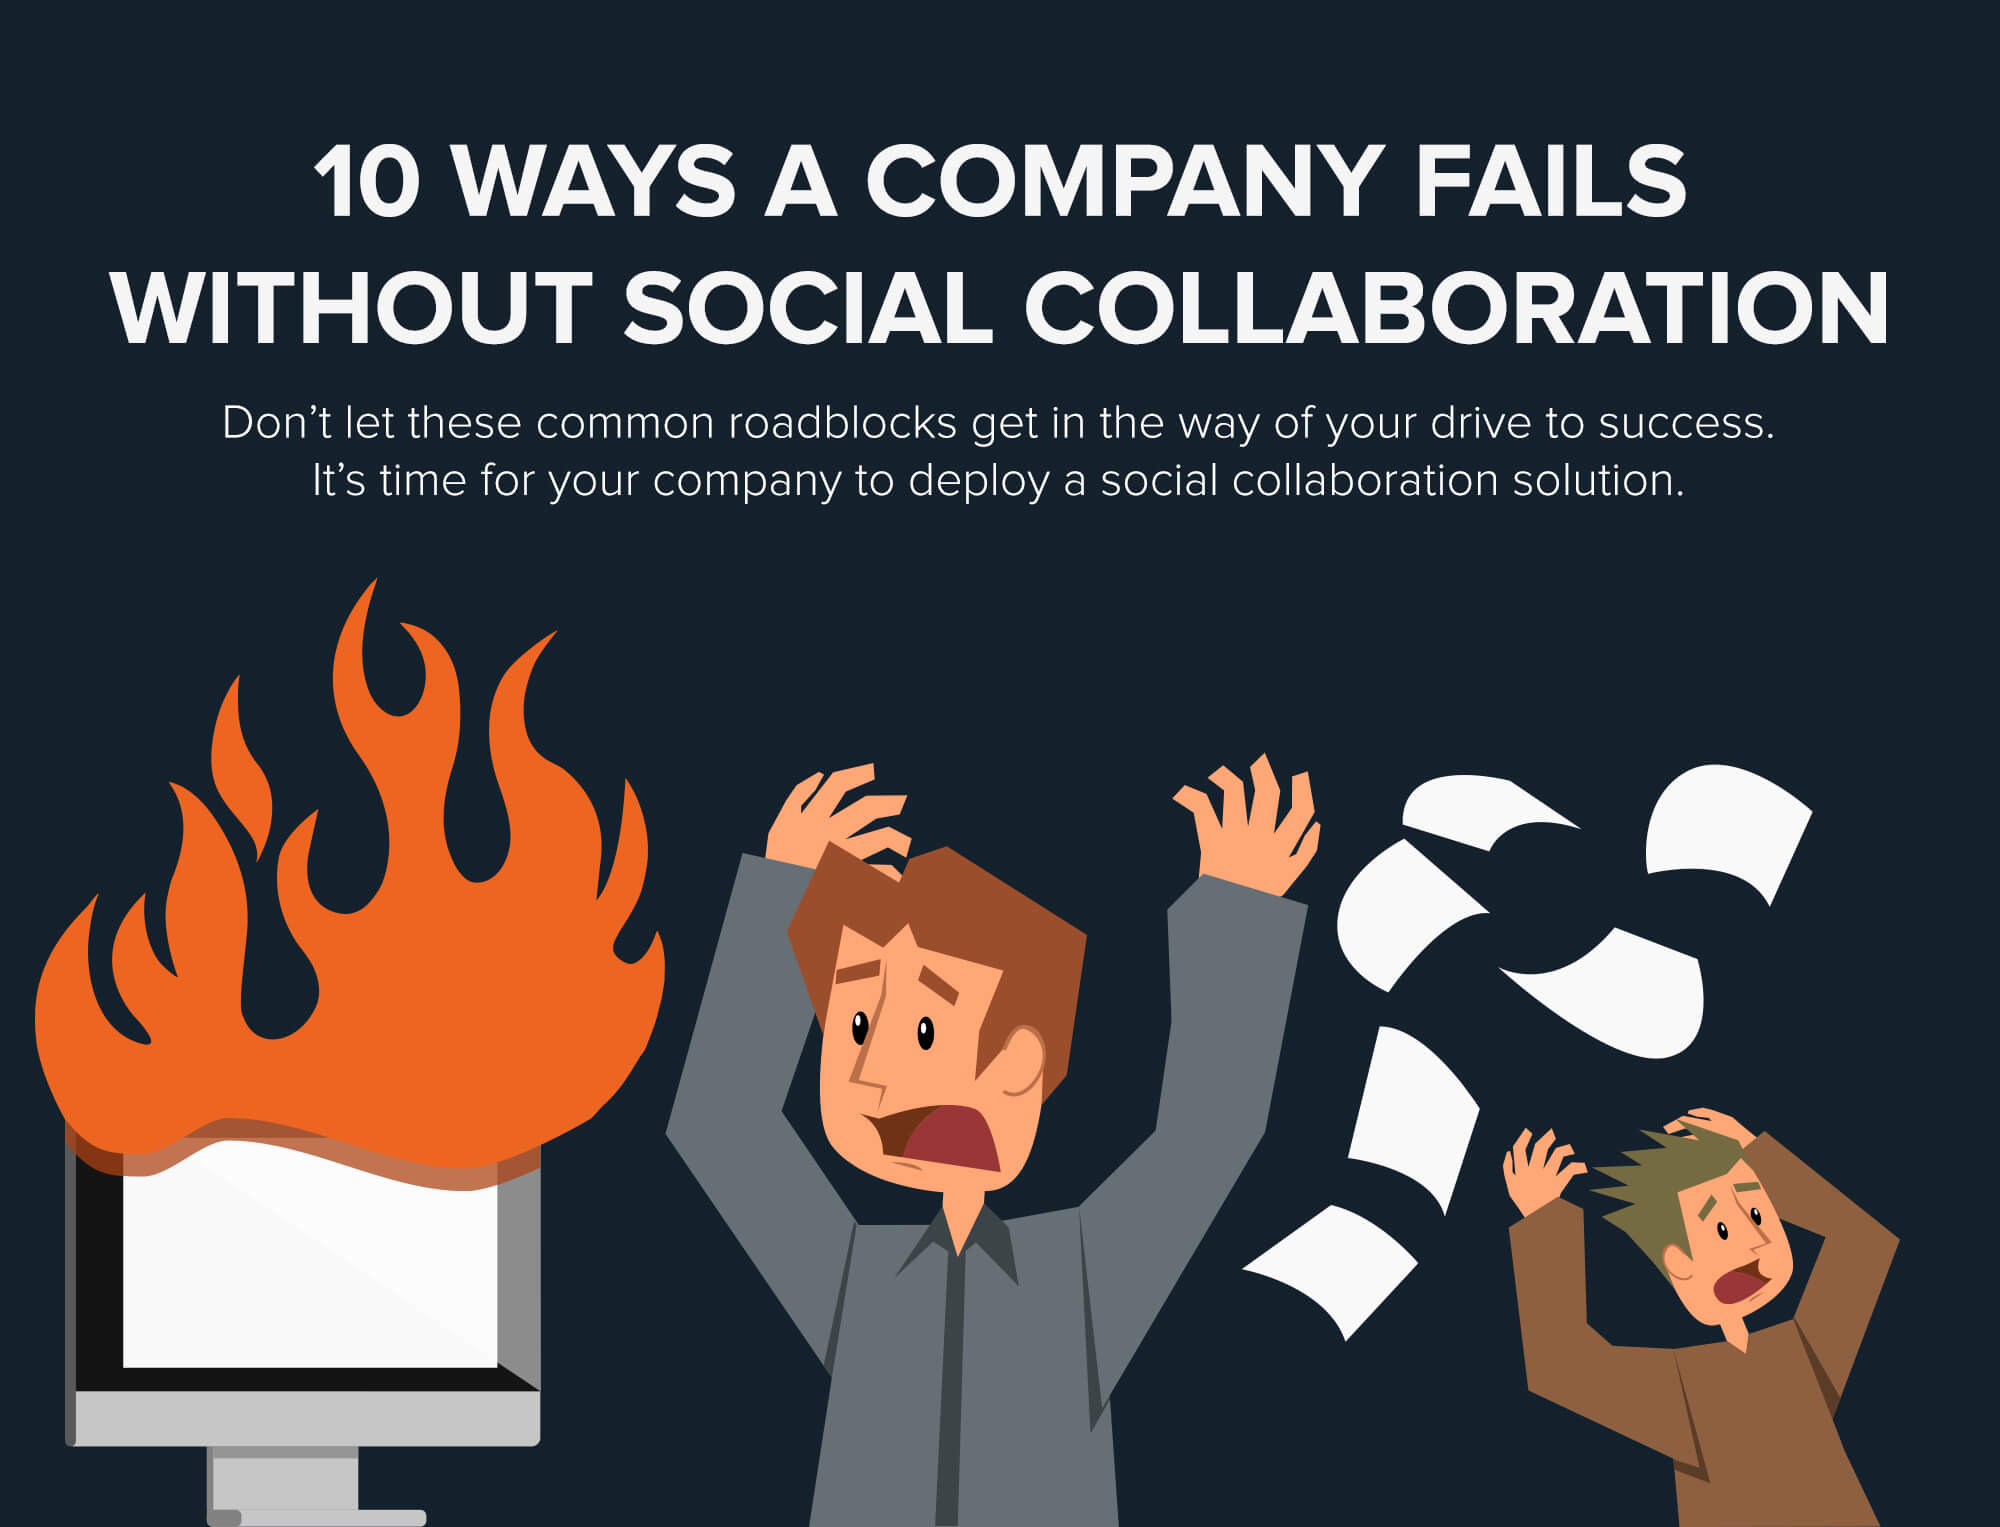 Facebook_Infographic_10_Ways_A_Company_Fails_Without_Social_Collaboration_160601_EN_01